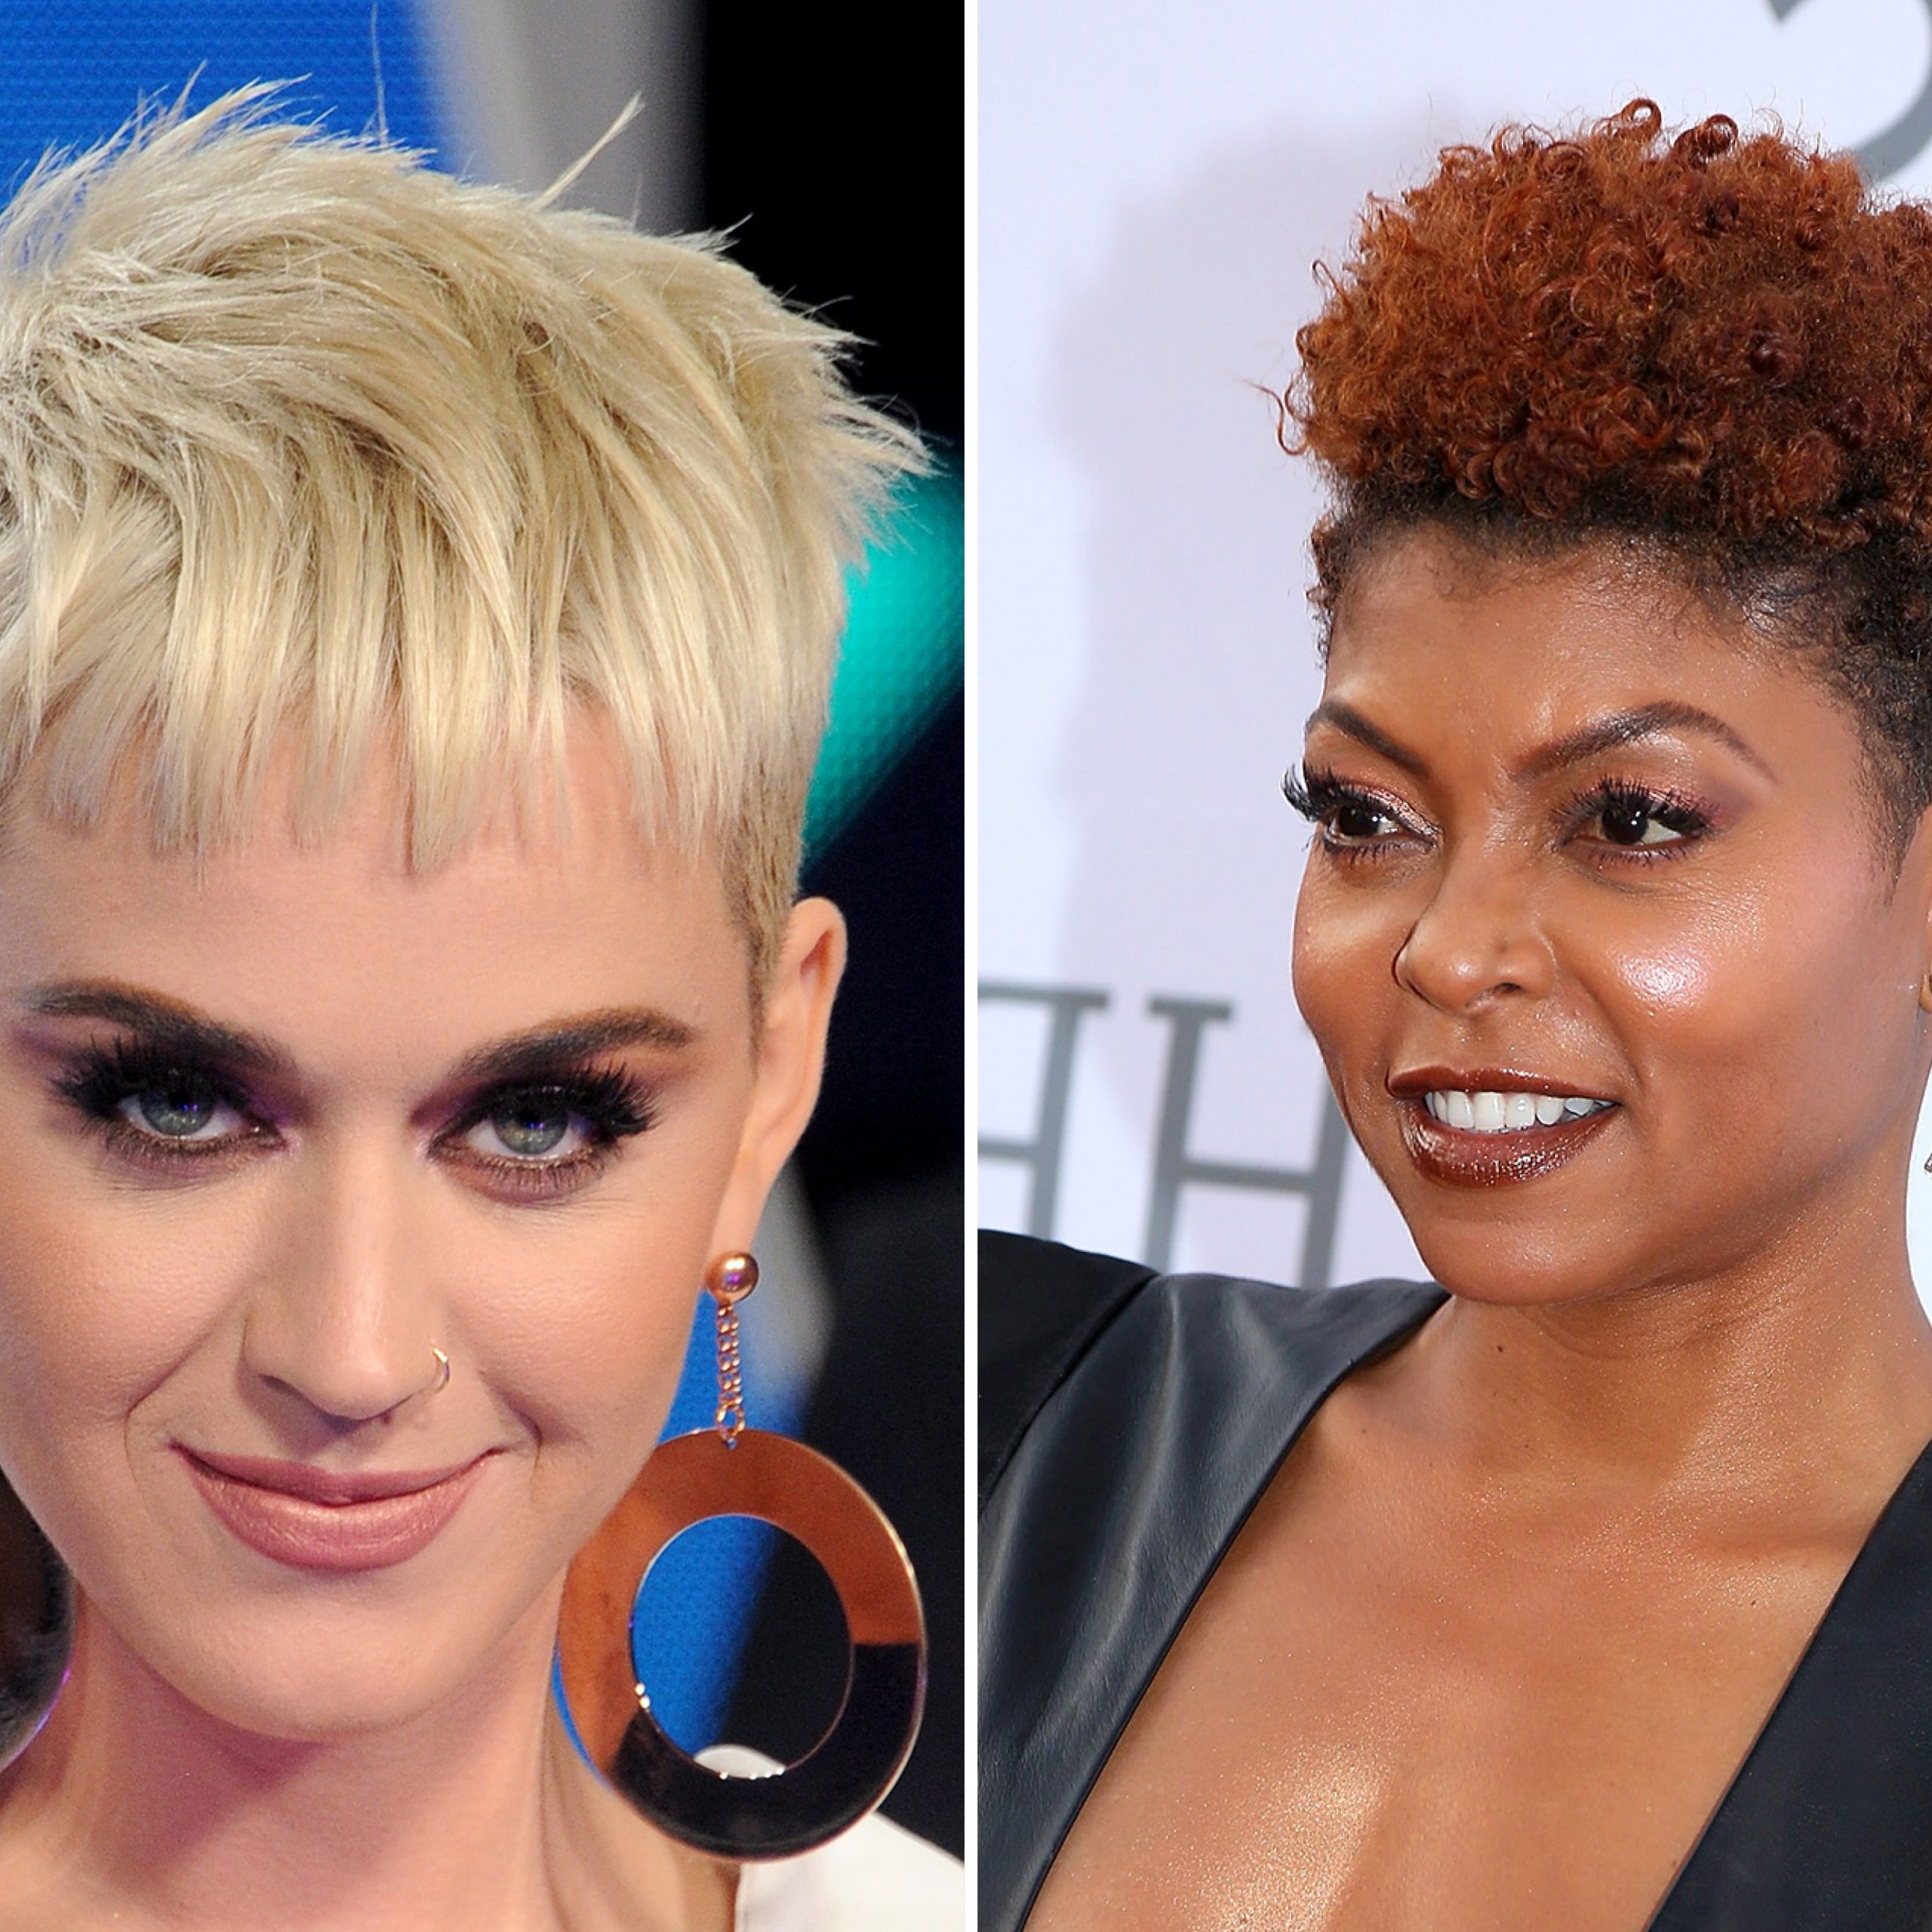 19 Best Pixie Cuts Of 2019 – Celebrity Pixie Hairstyle Ideas Inside Trendy Silver Pixie Haircuts With Side Swept Bangs (View 4 of 20)